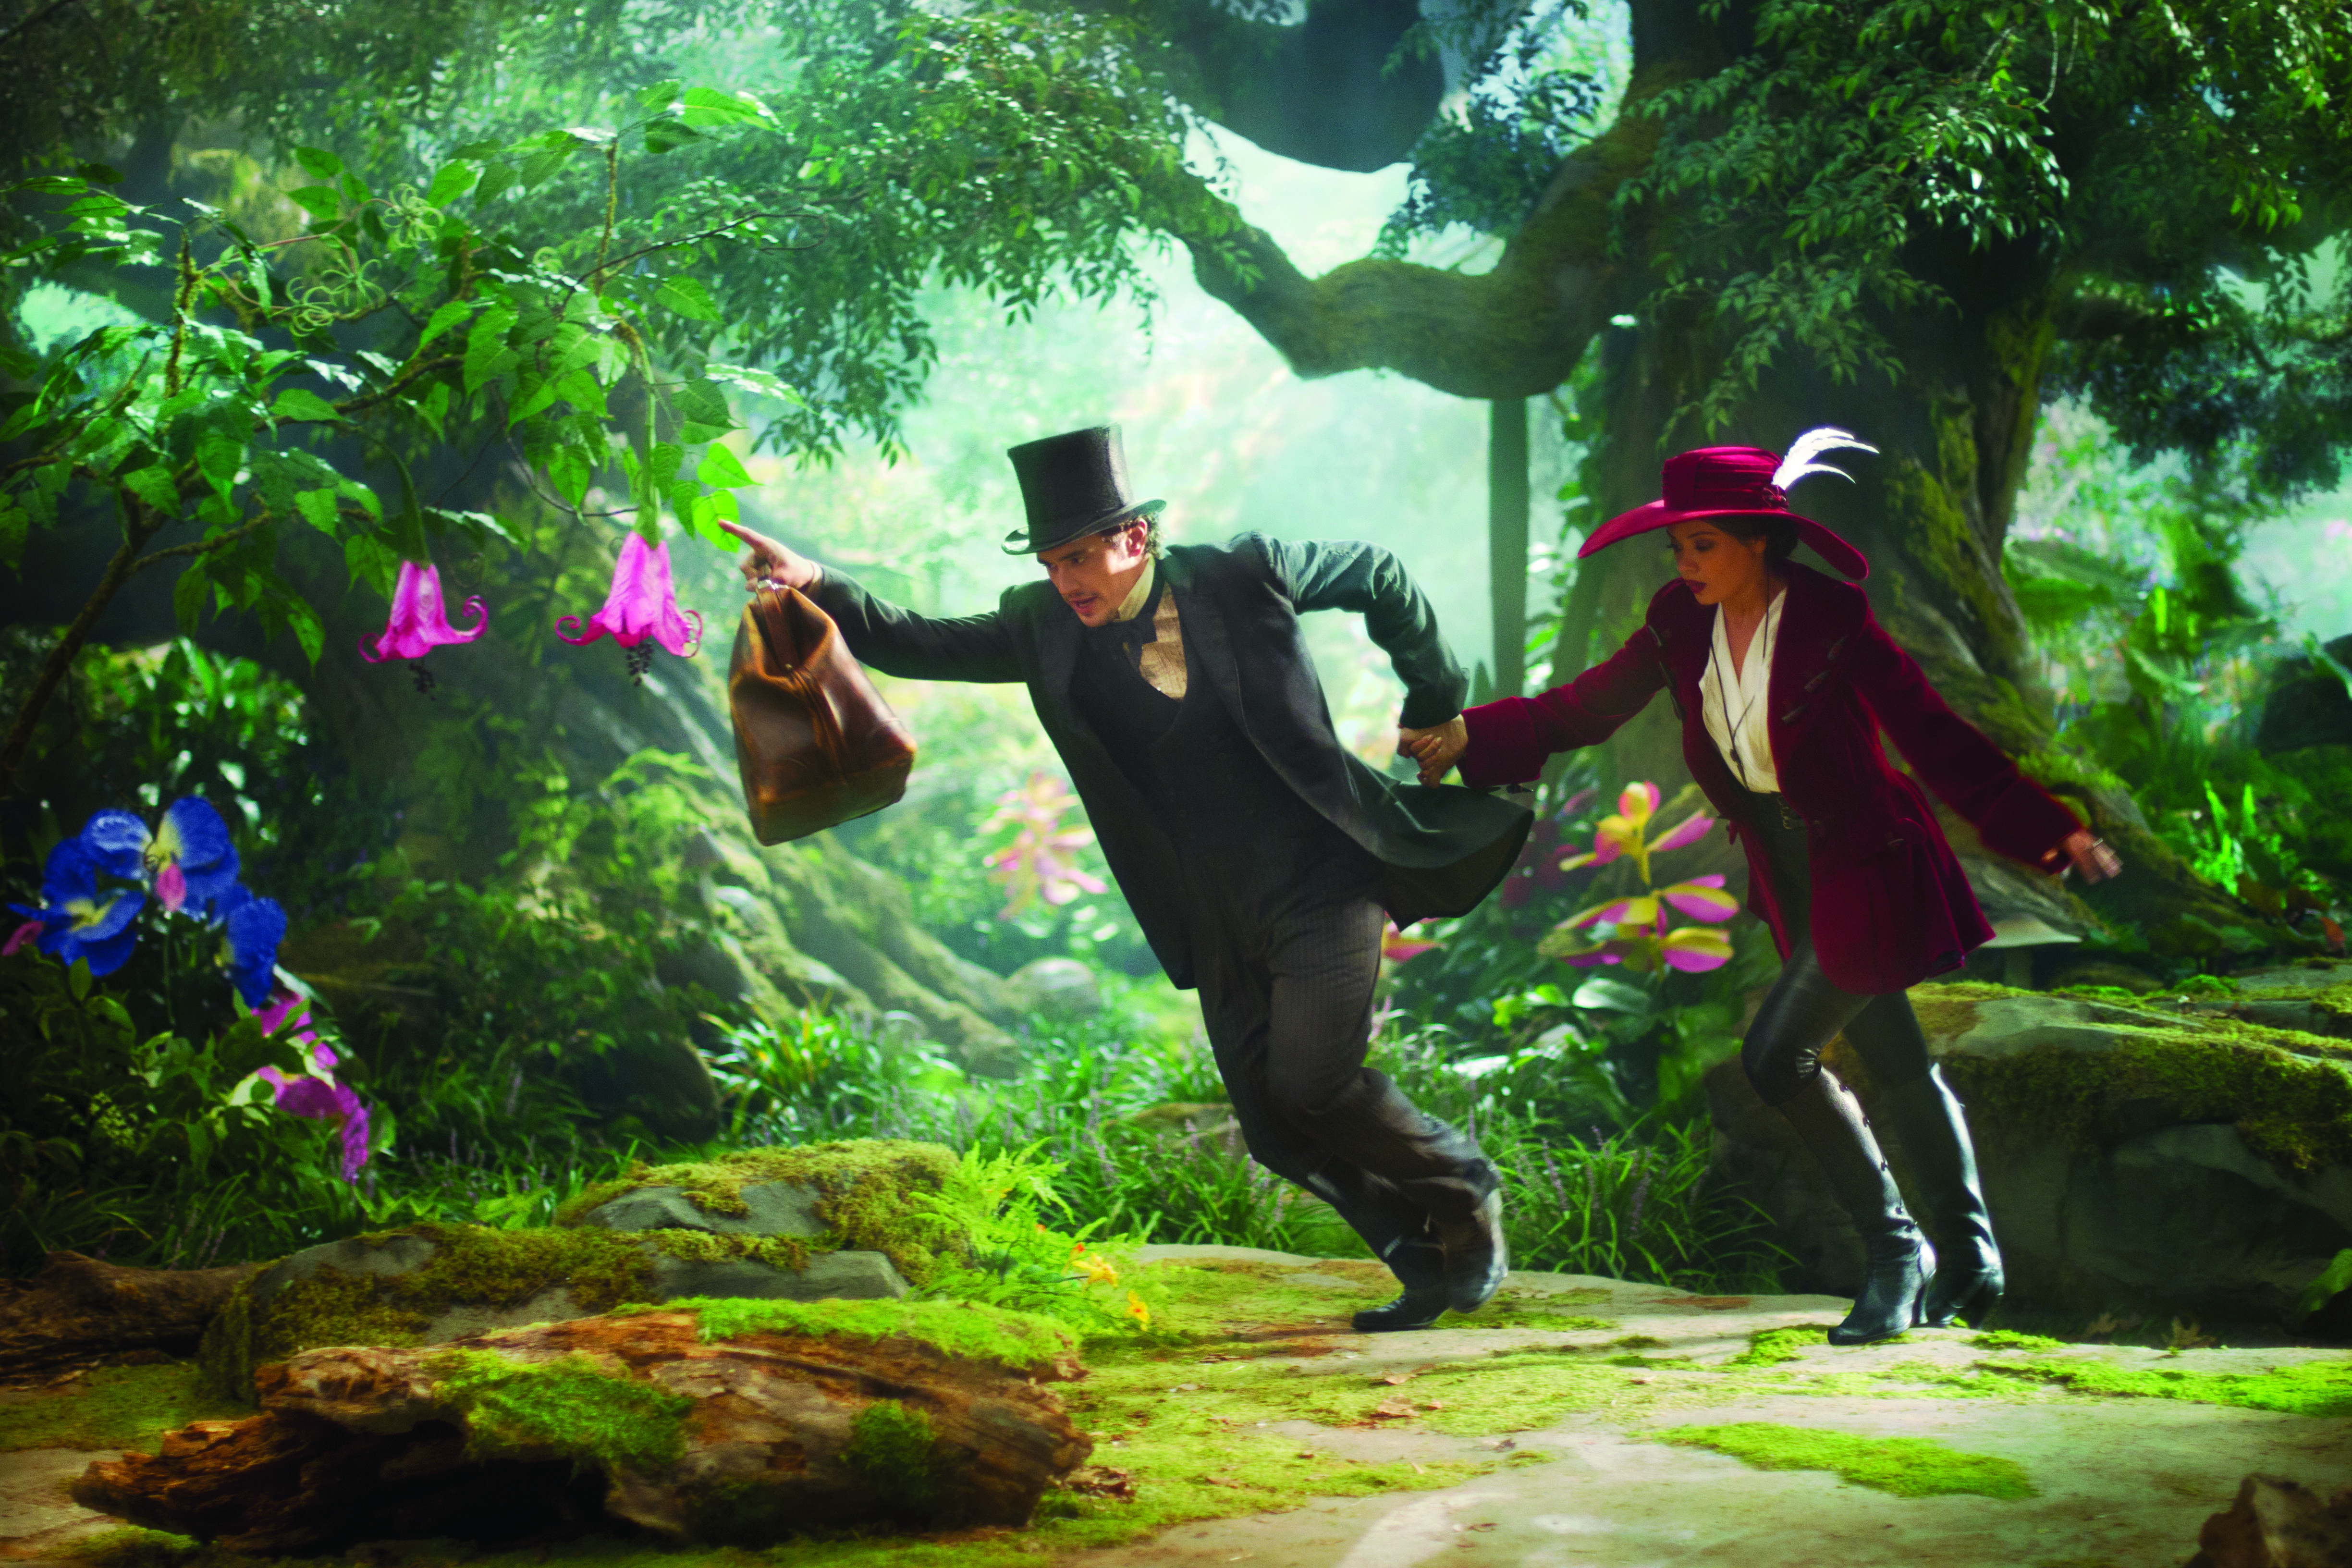 James-Franco-and-Mila-Kunis-in-Oz-the-Great-and-Powerful